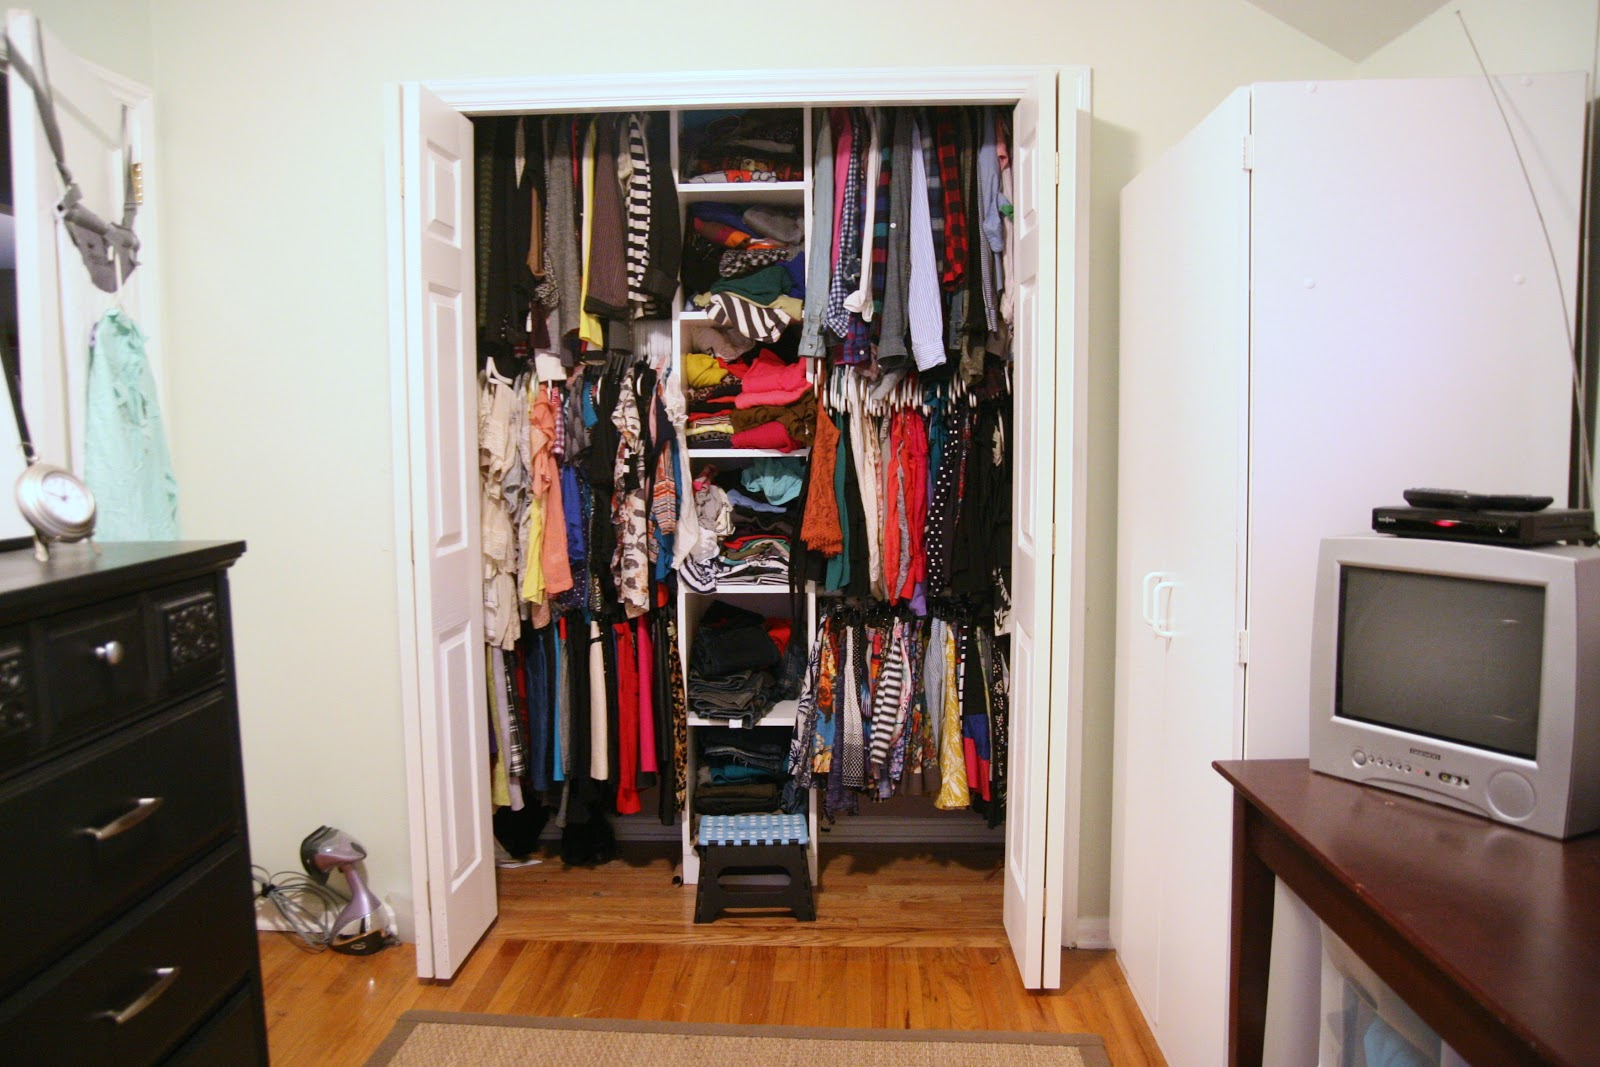 Ikea Westchester Thrift And Shout: A Peek Into My Closet Room